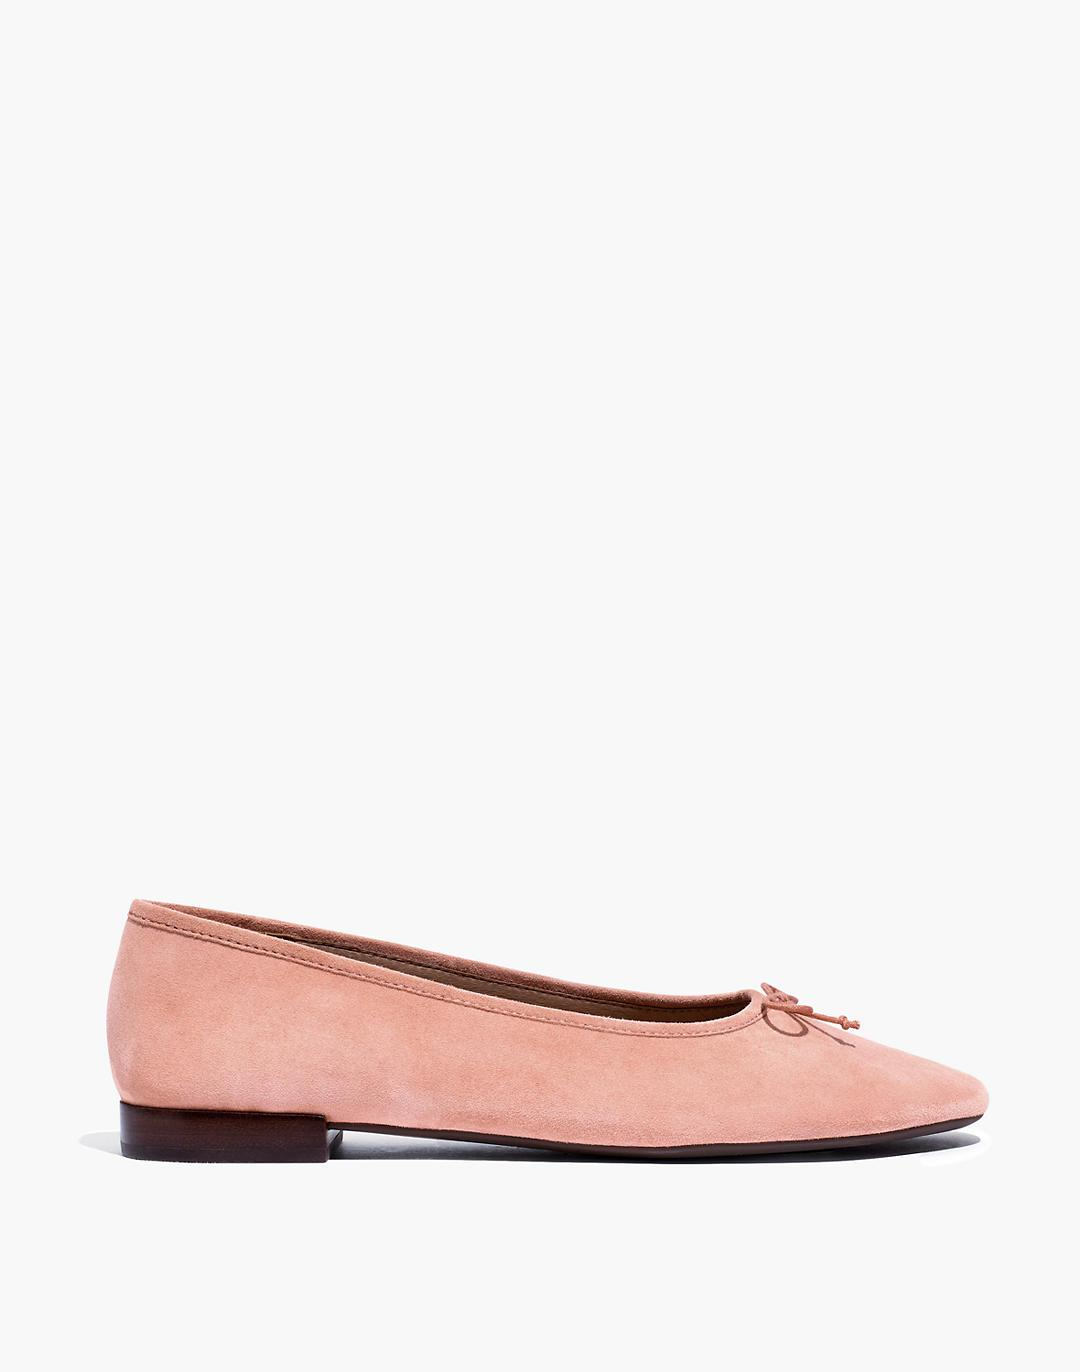 The Adelle Ballet Flat in Suede 1